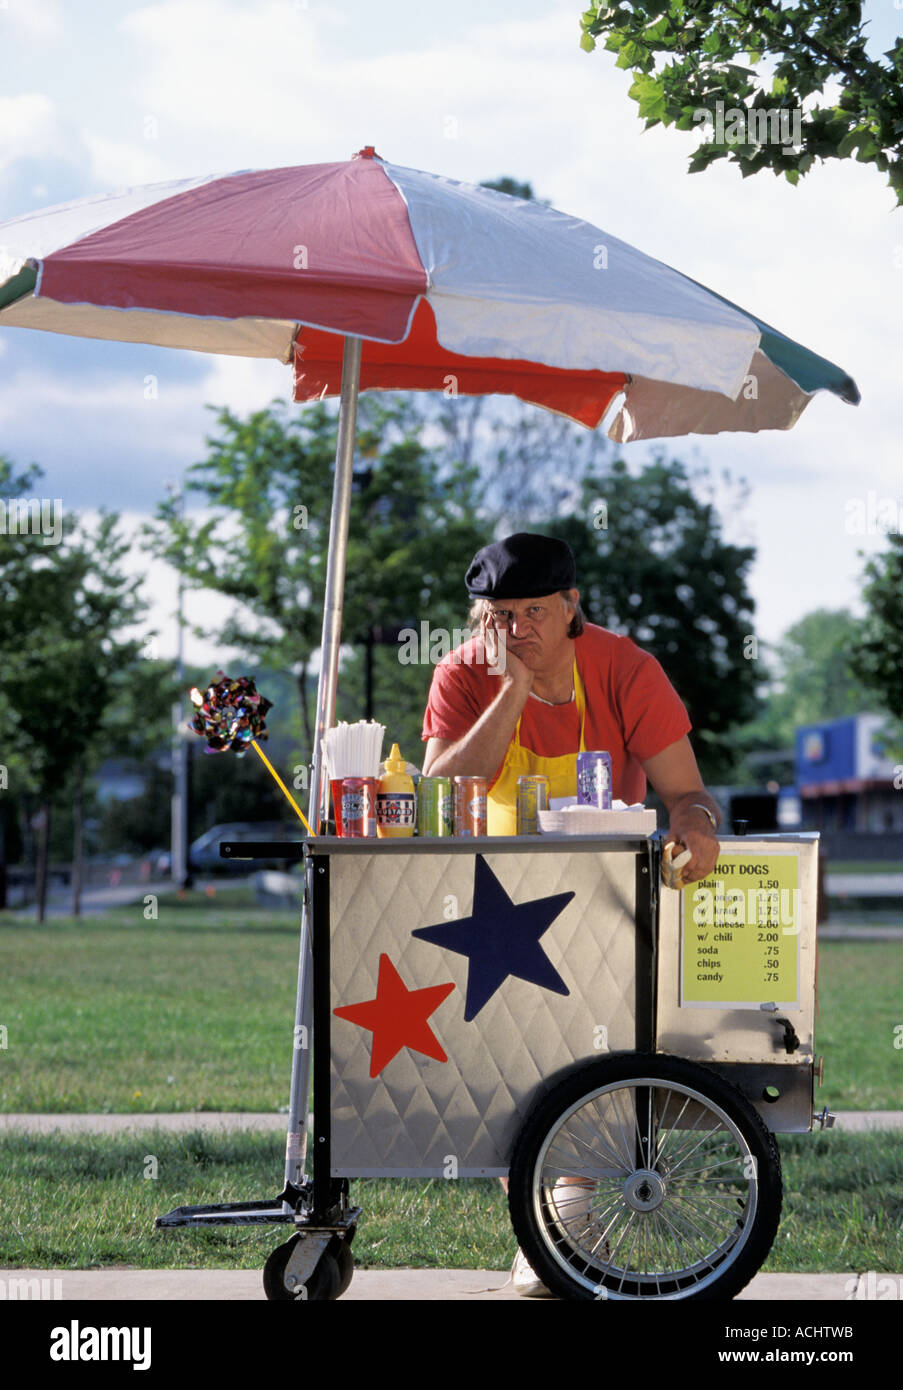 Hot dog vendor without customers - Stock Image